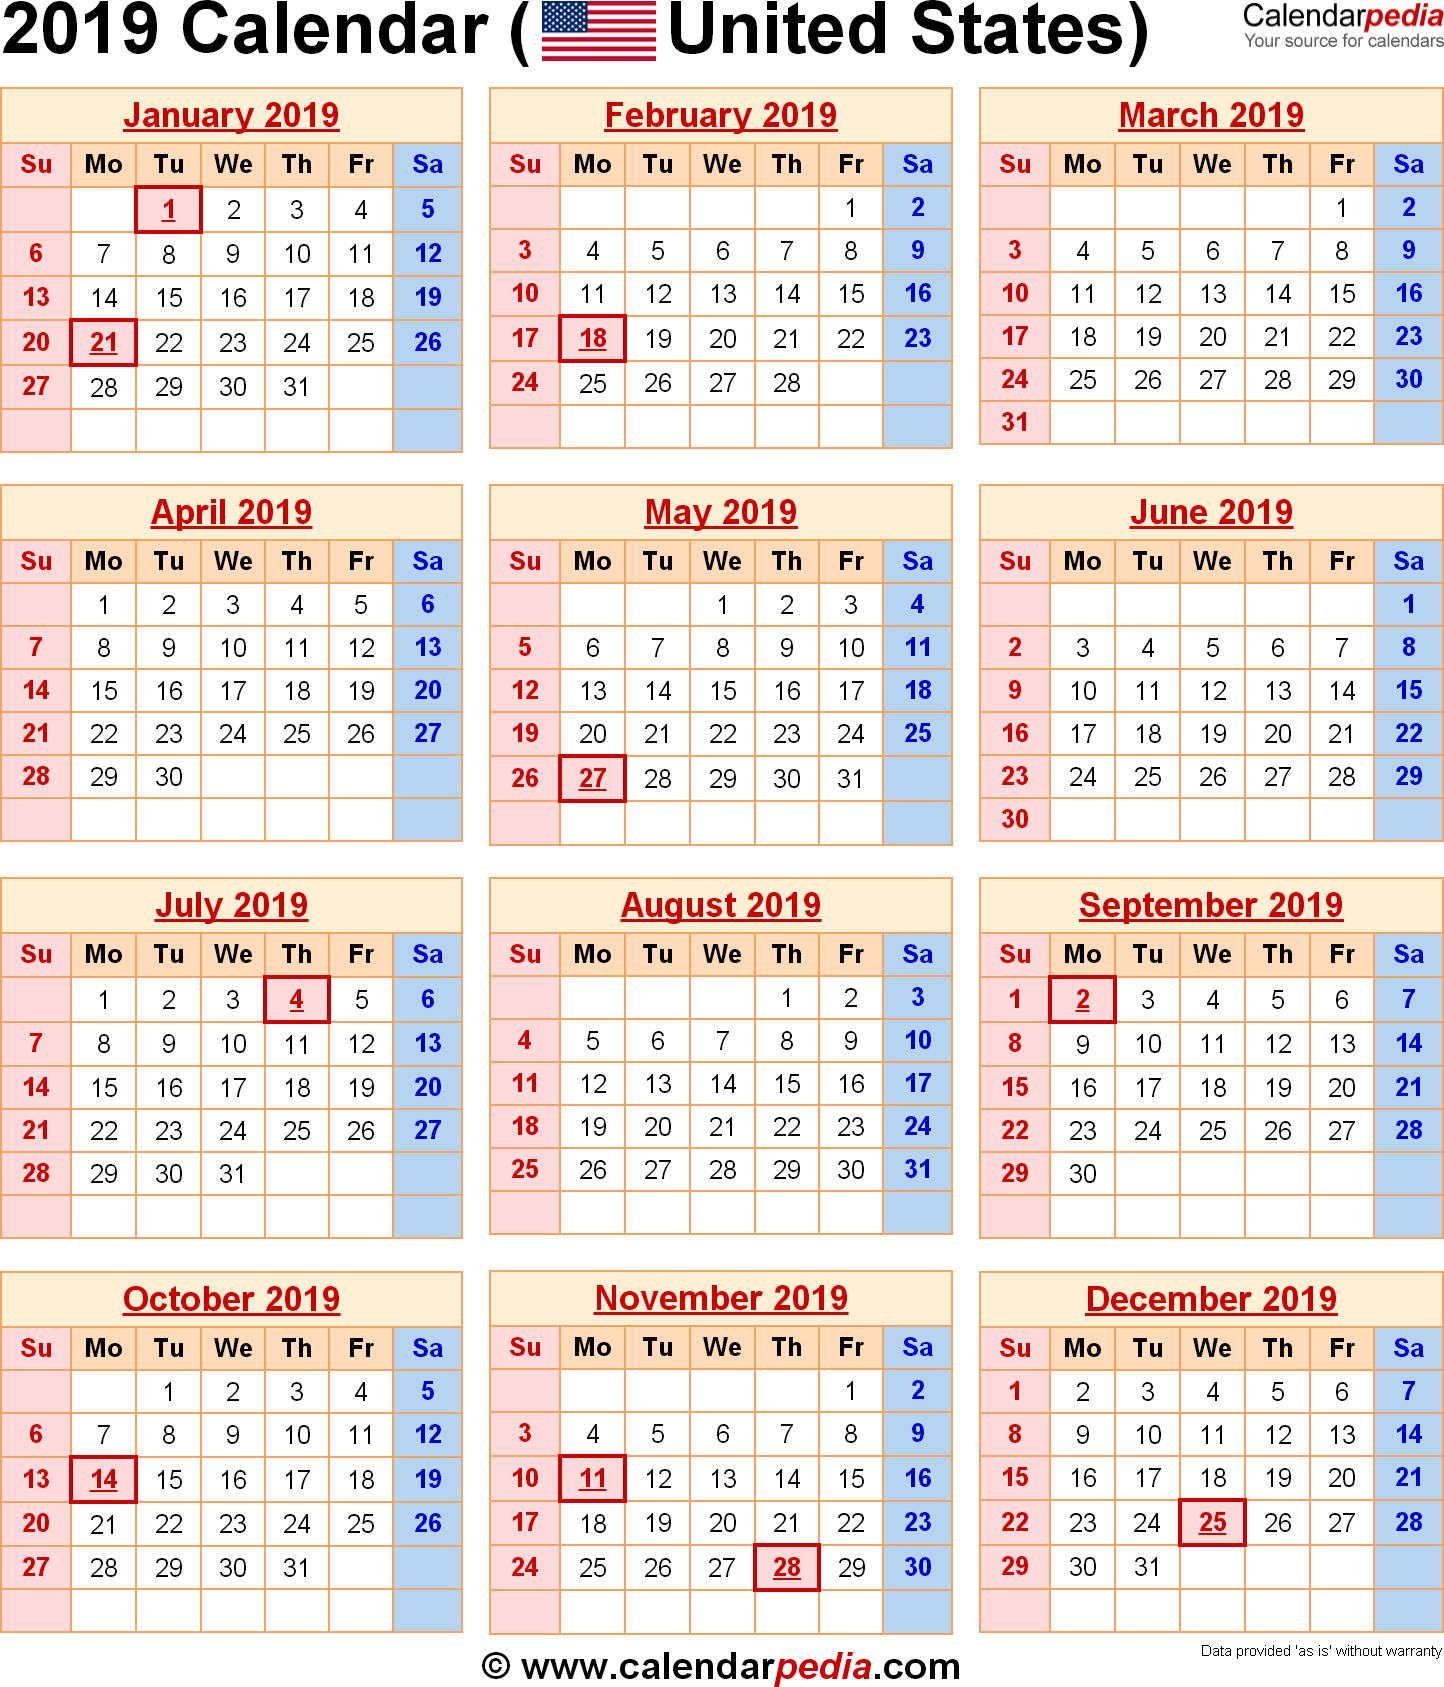 2019 Calendar With Federal Holidays with regard to Bihar Sarkar Calendra